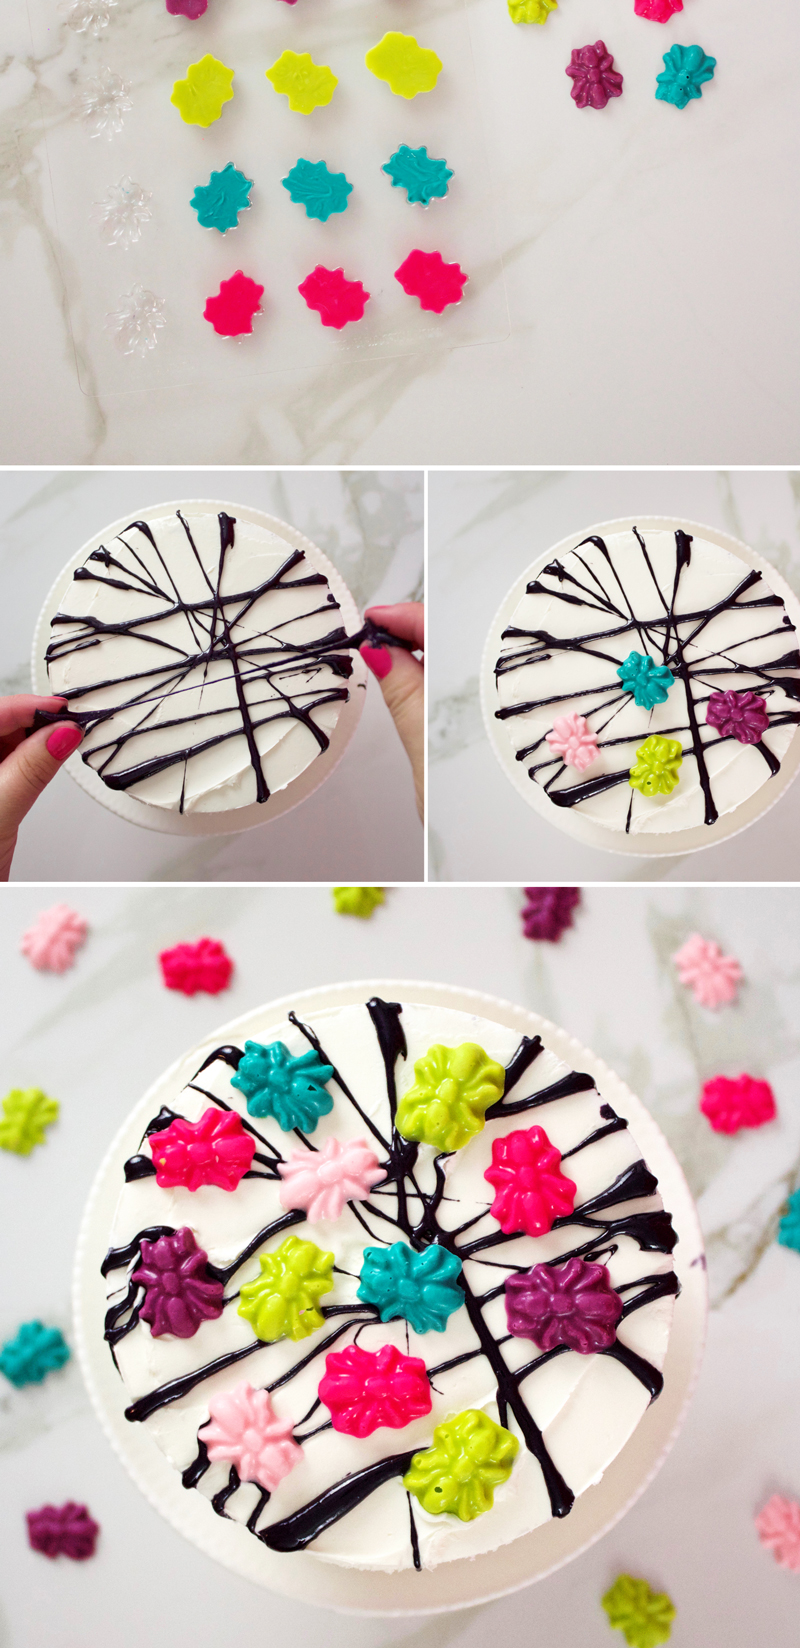 Spider Web frightful cake step by step instructions